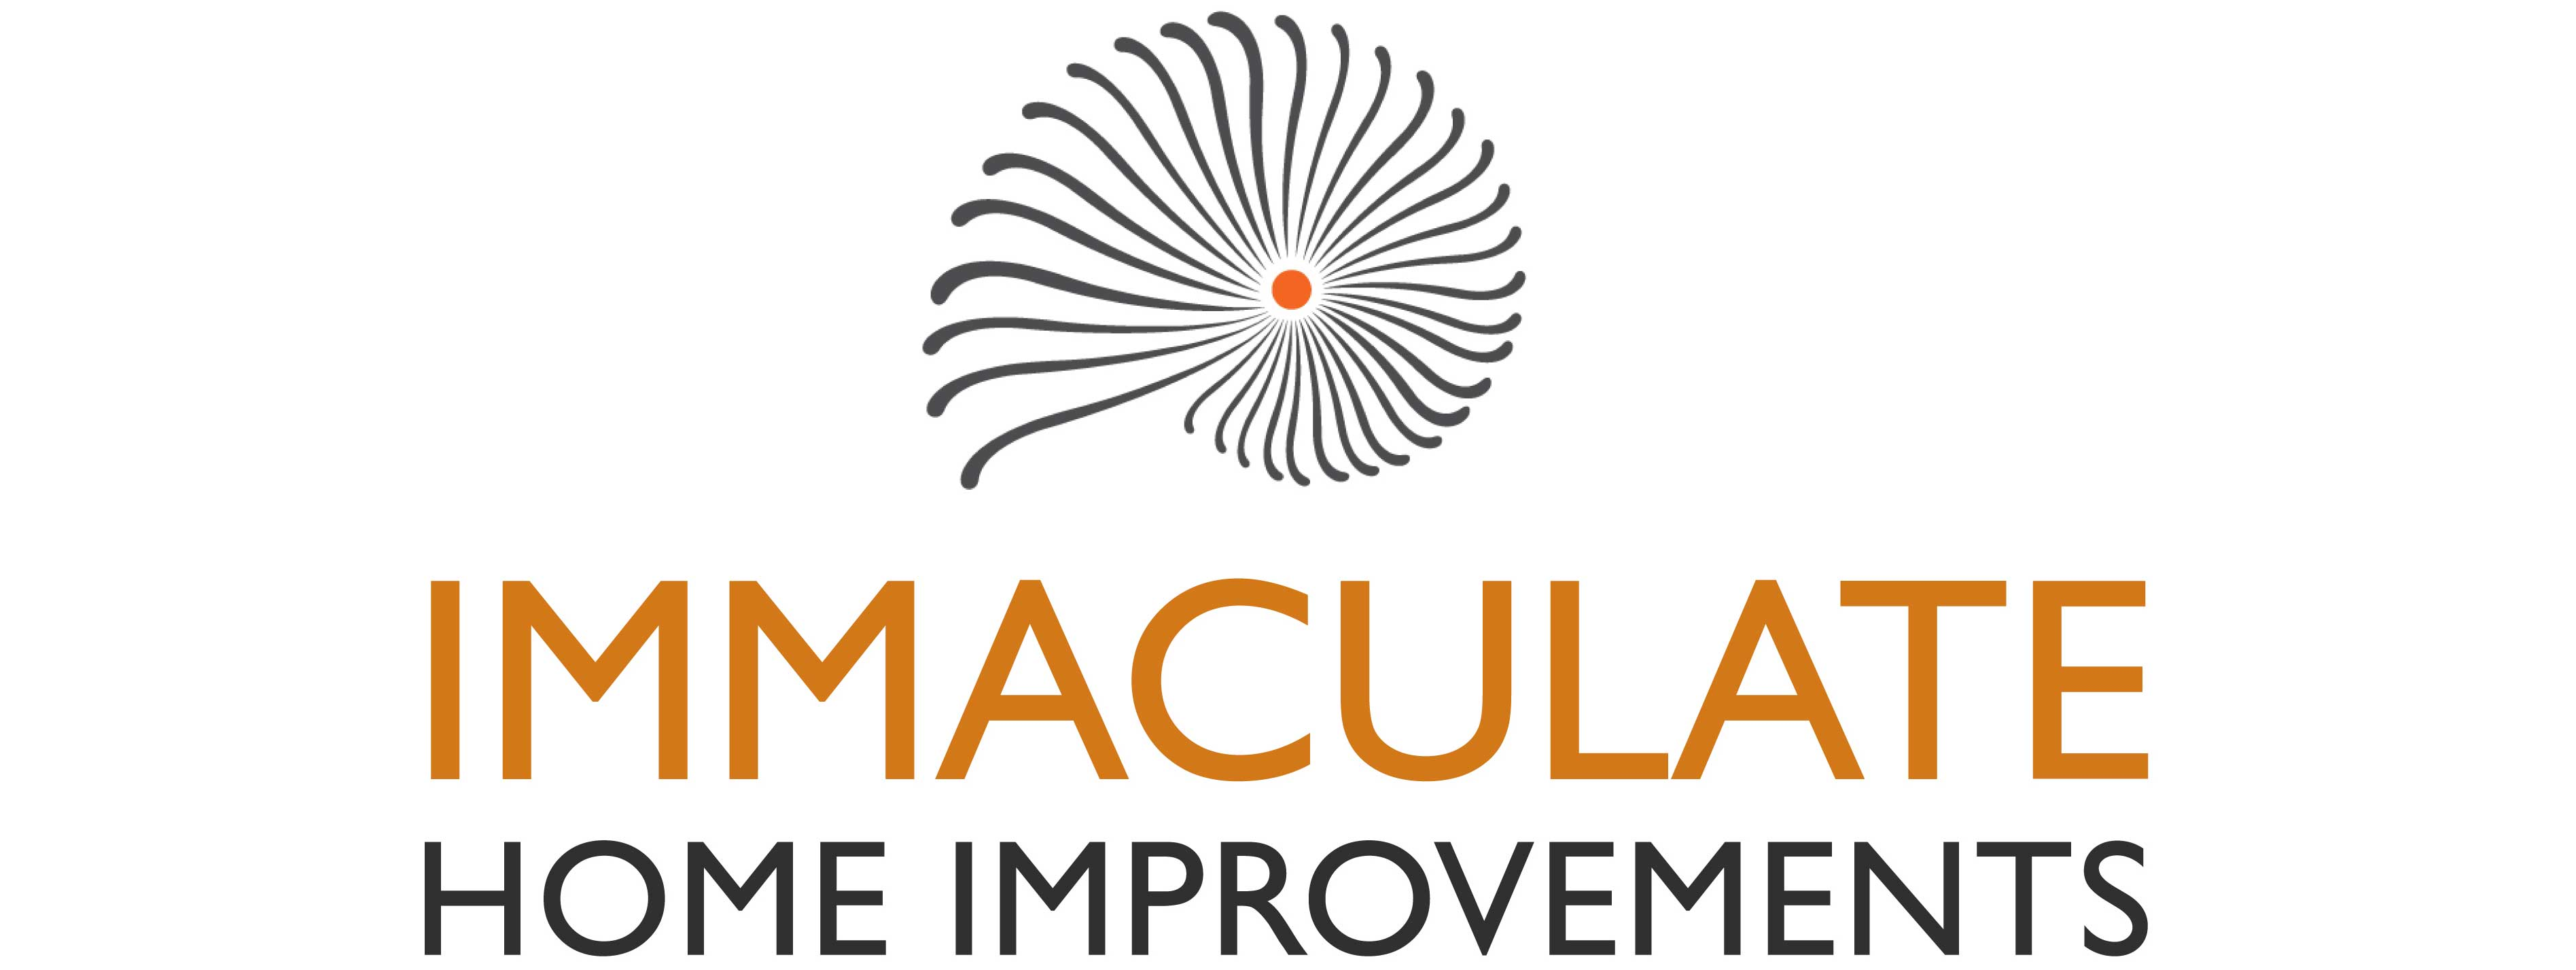 immaculate home improvements logo